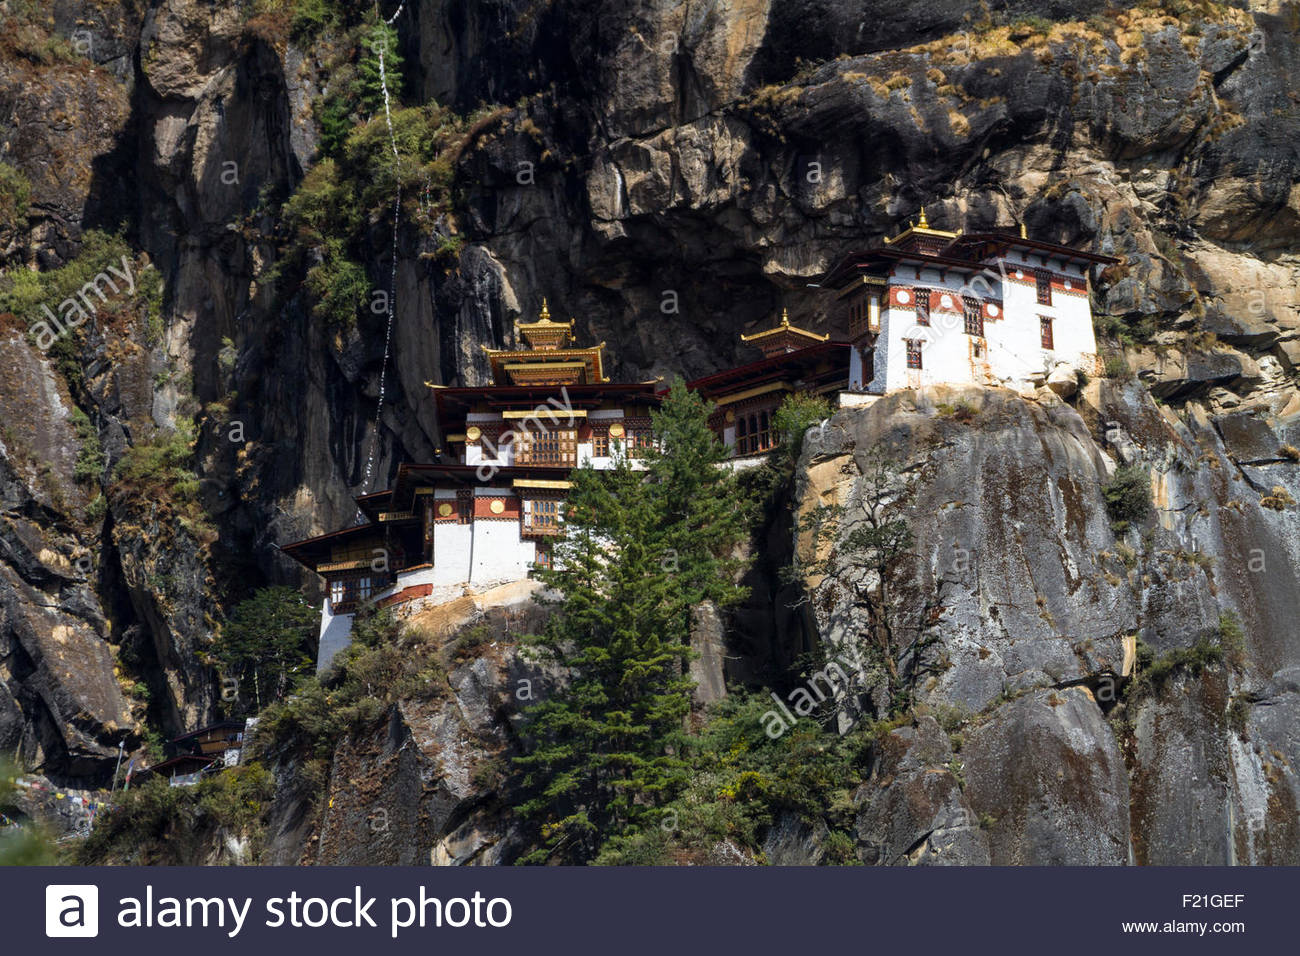 View of the Paro Monastery known as Tiger's Nest, or Taktsang Palphug Monastery, high on cliffs above the valley Stock Photo